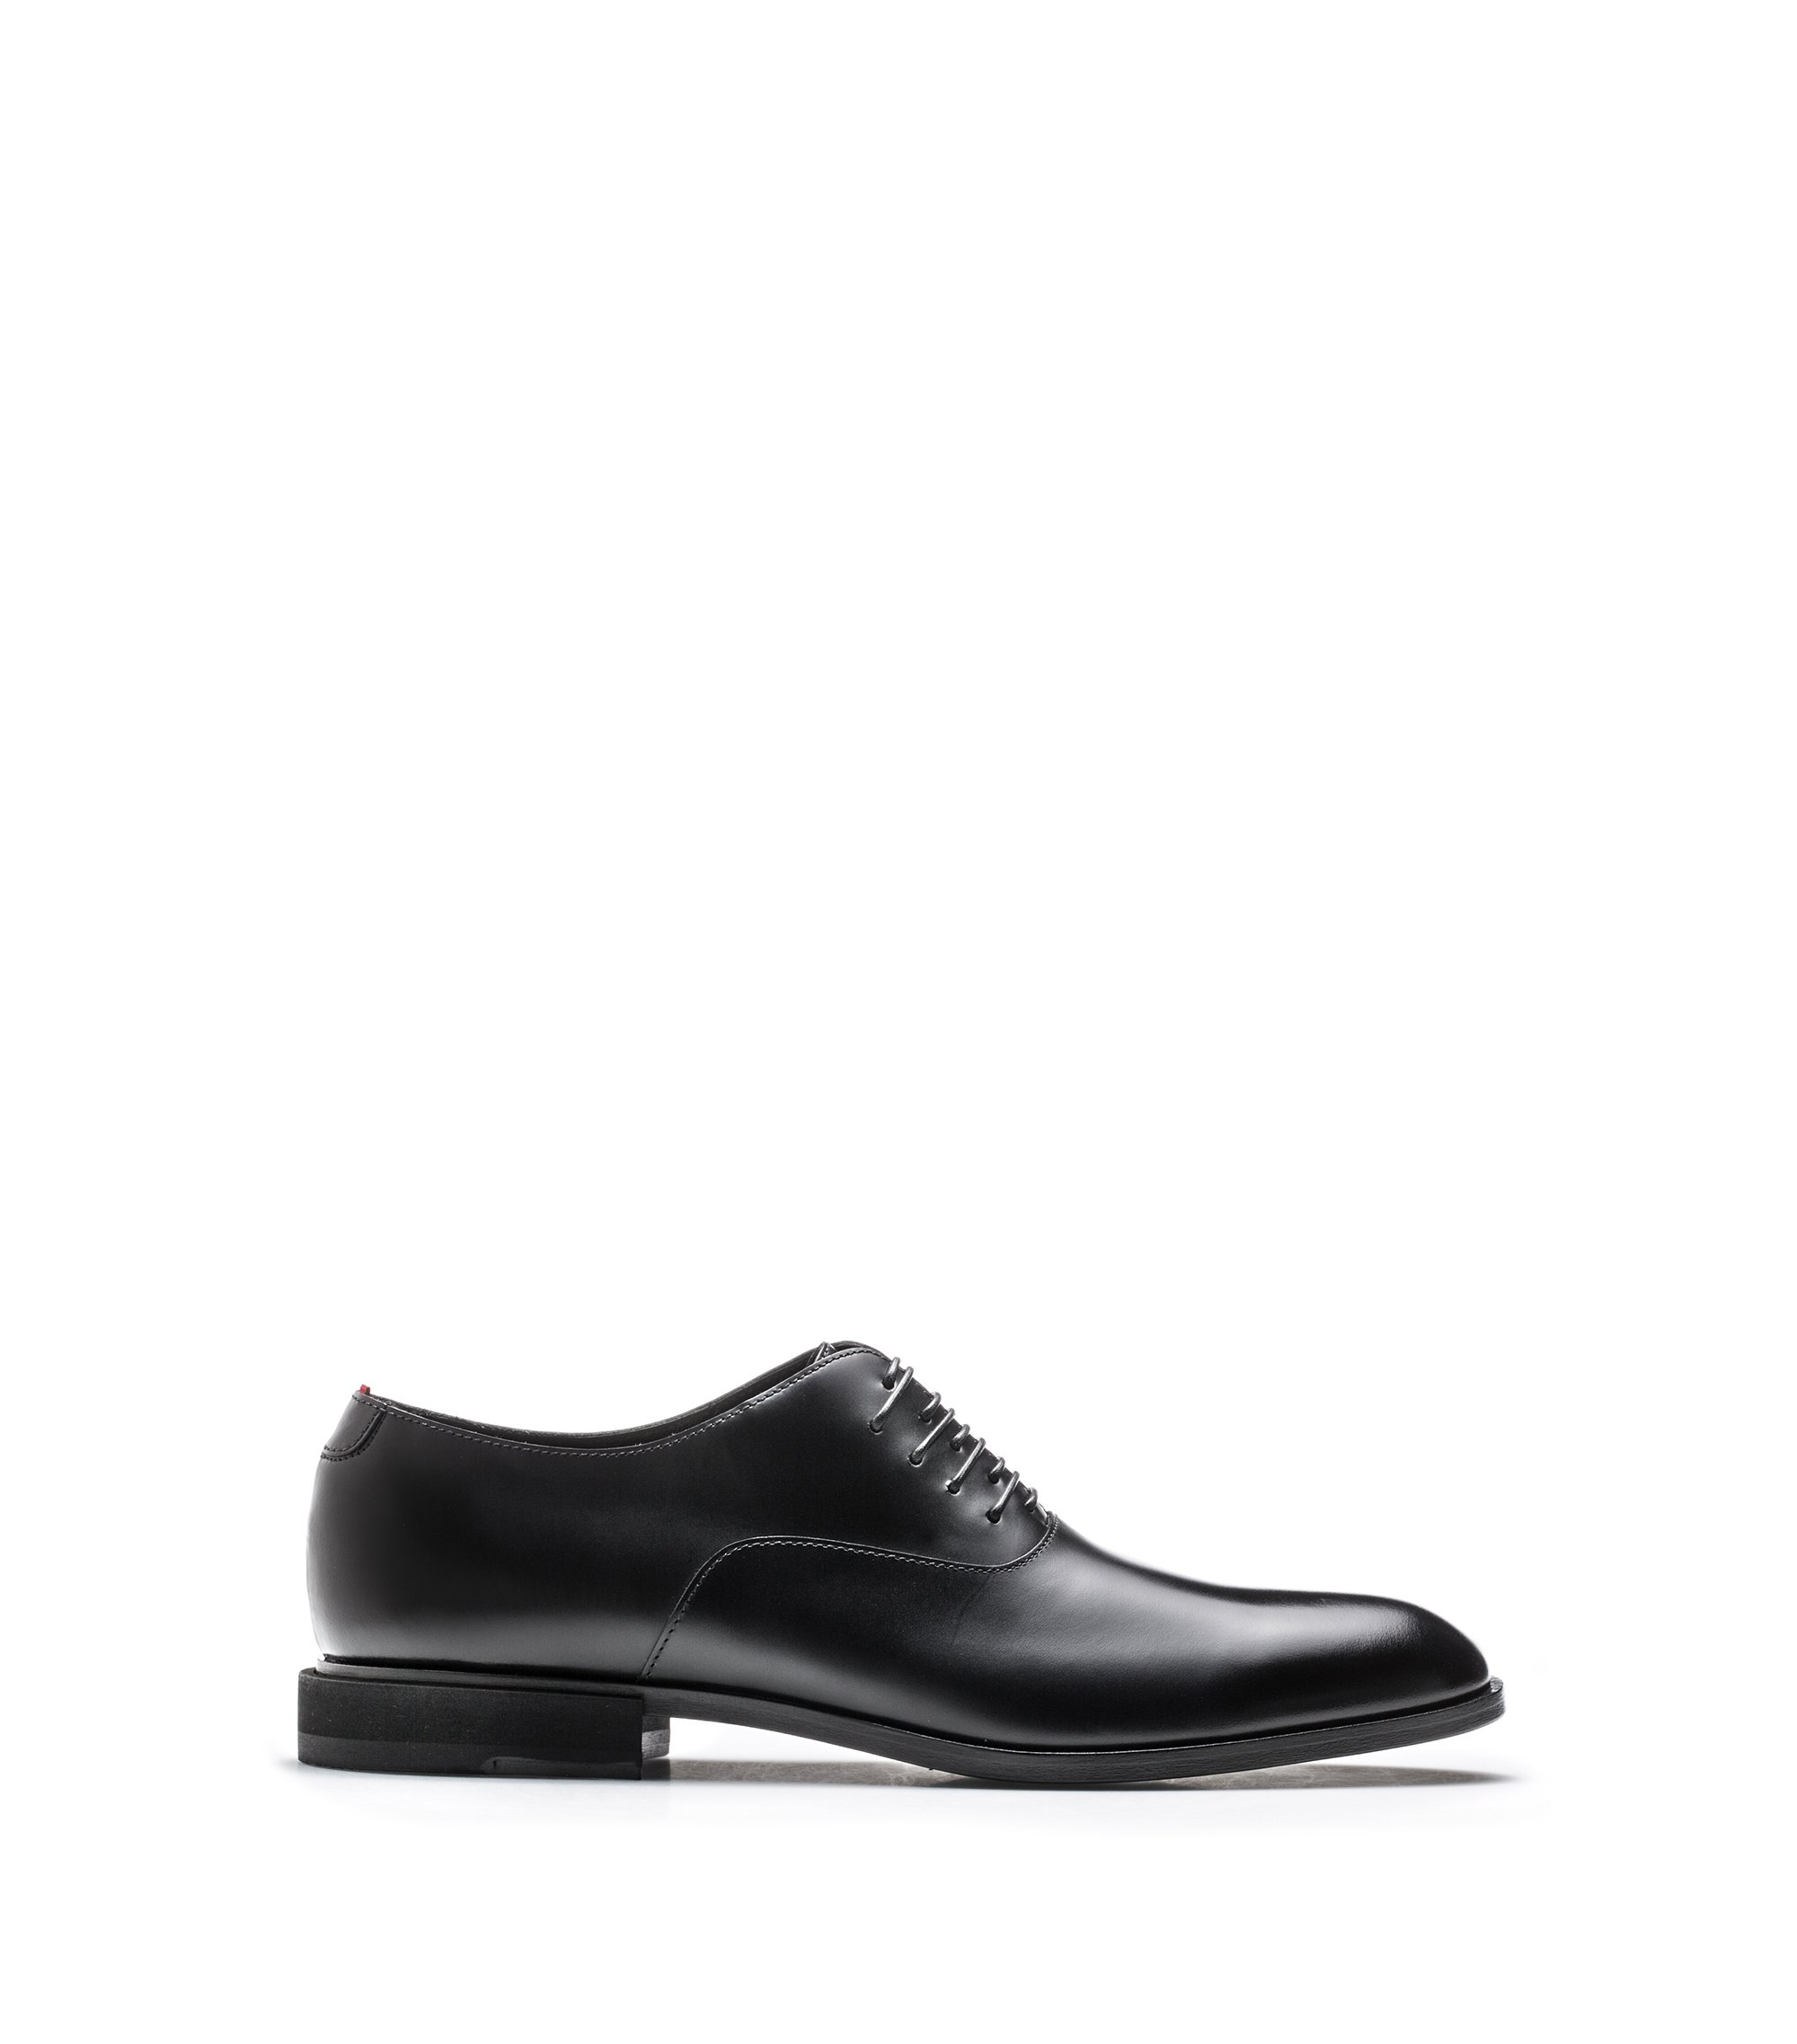 Calf-leather Oxford shoes in calf leather with unconventional lacing, Black